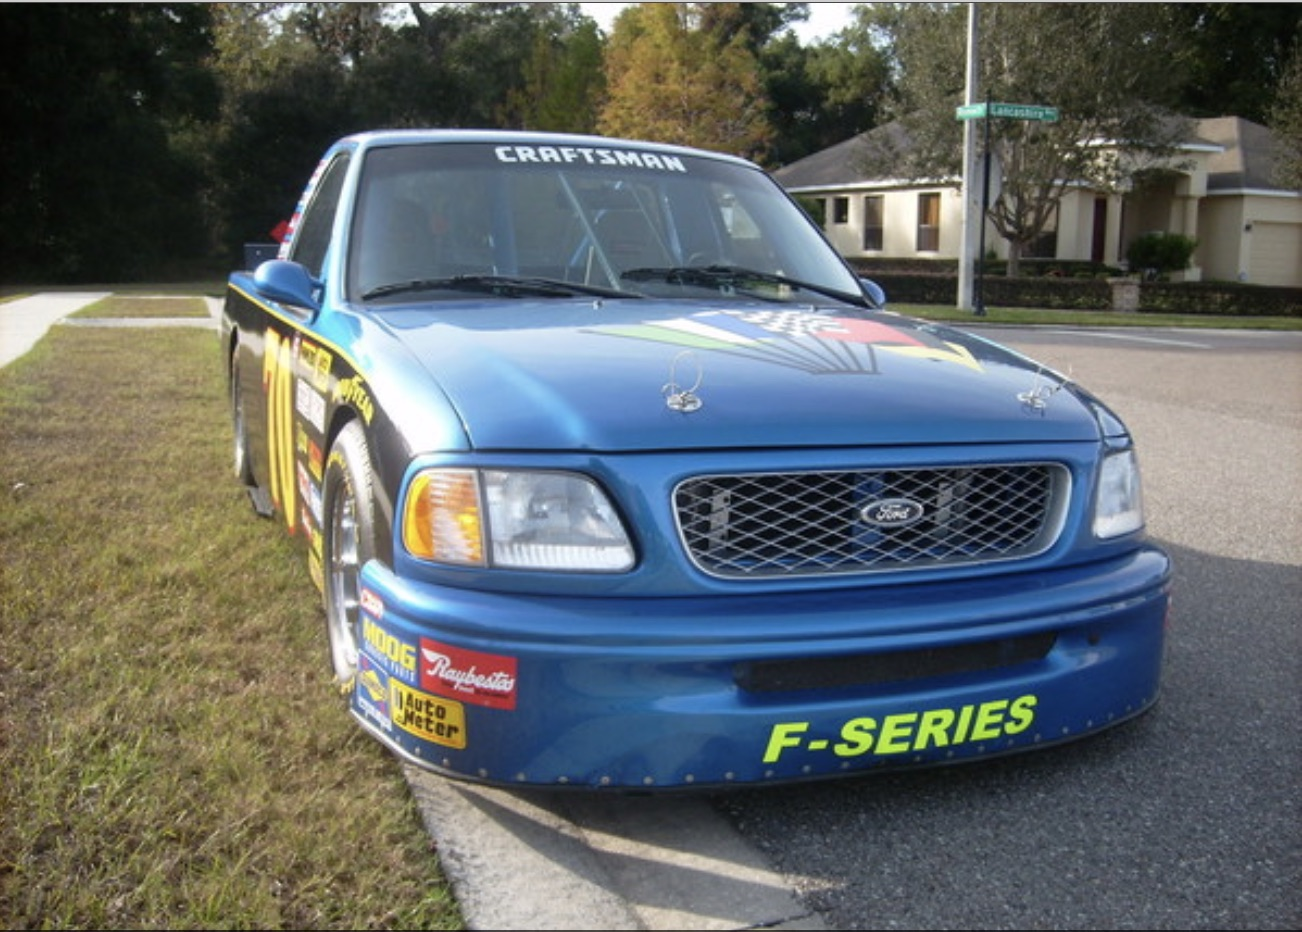 Money No Object: Have Your Race Car For The Street With This Legalized Craftsman Truck F-150!